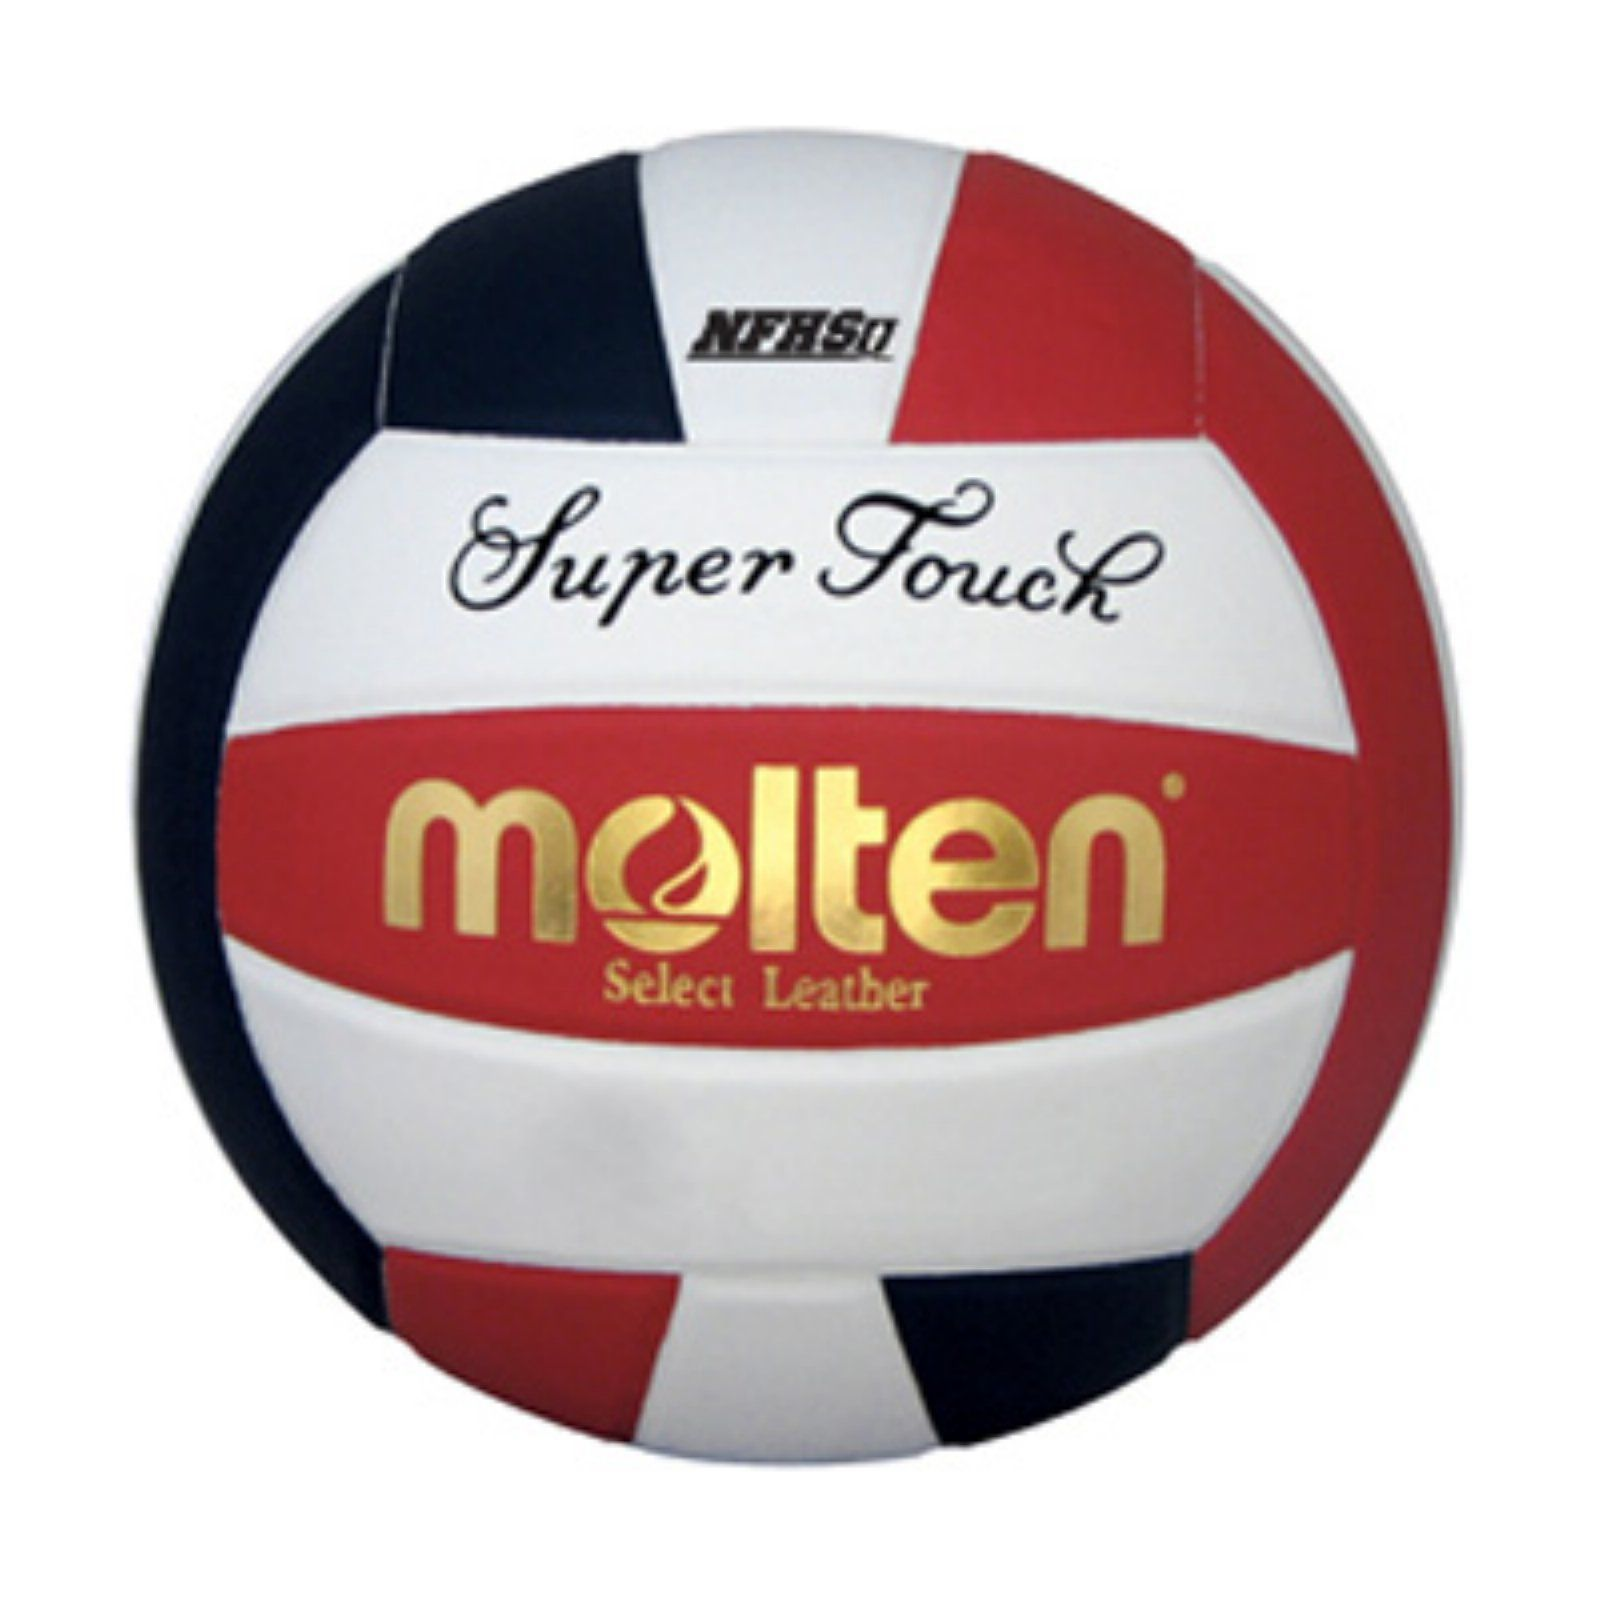 Molten Super Touch Premium Leather Volleyball Black Red Hs Volleyballs Volleyball Molten Volleyball